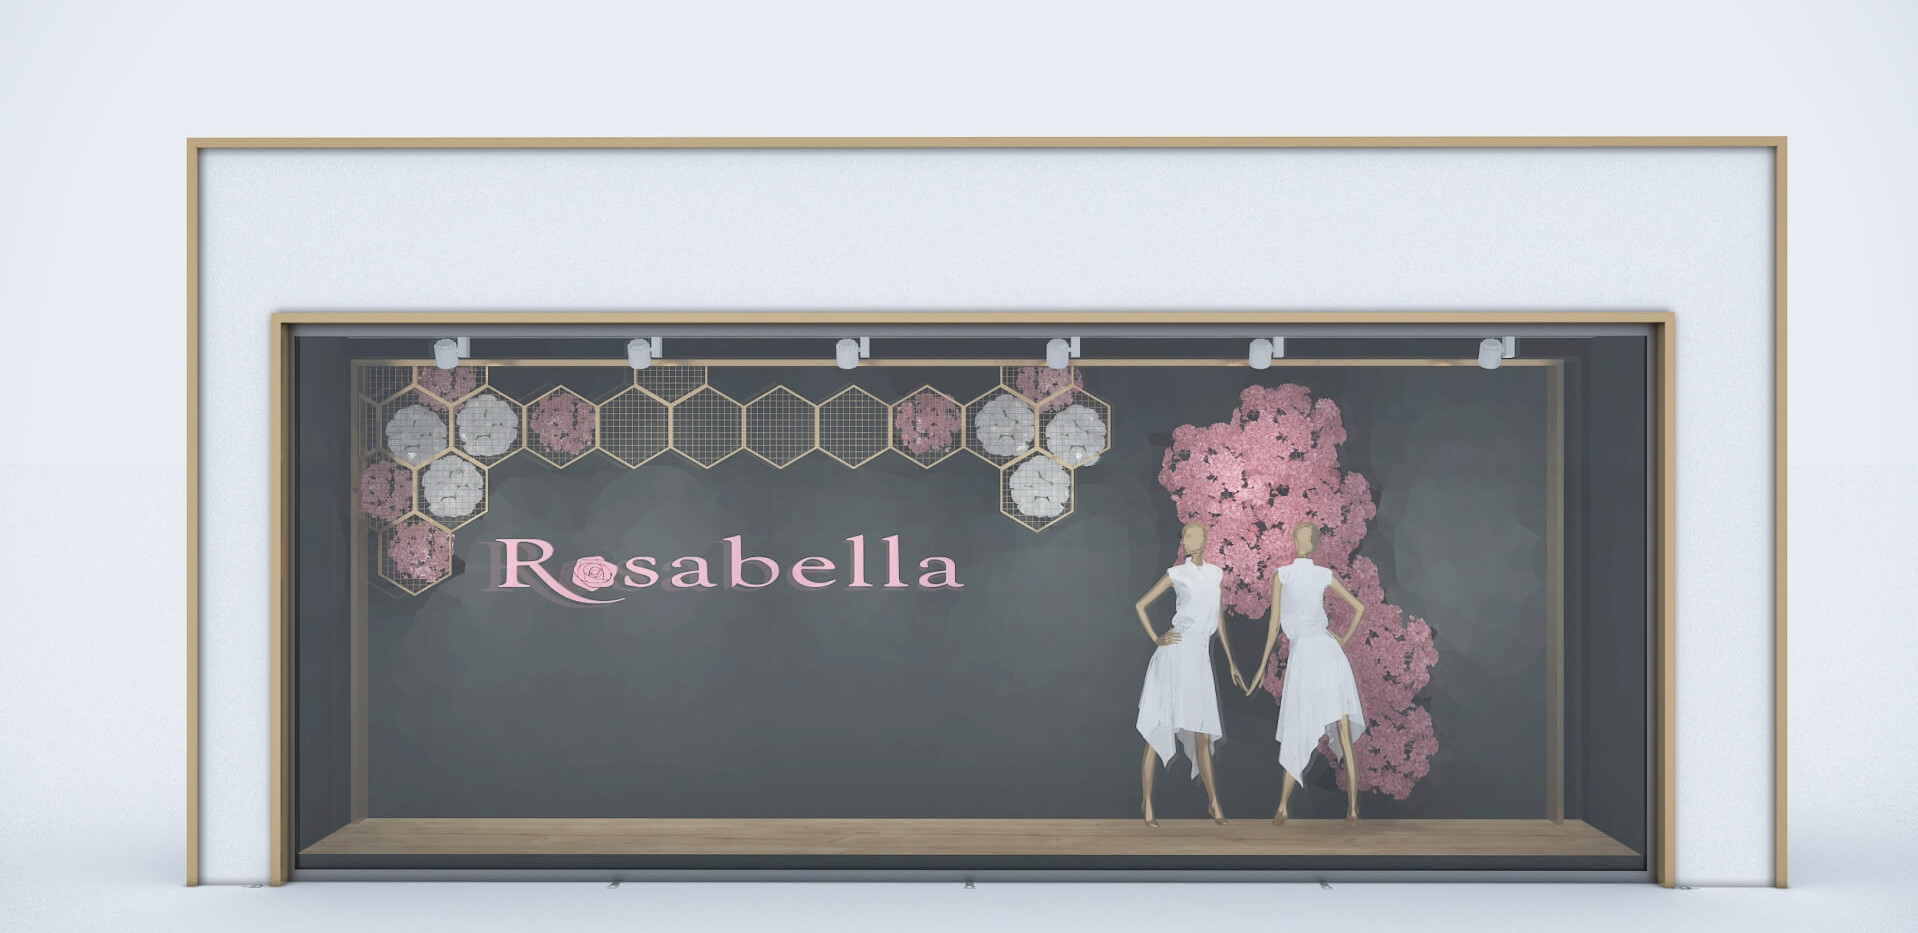 Rosabella - Fashion Store Shop Design-7.